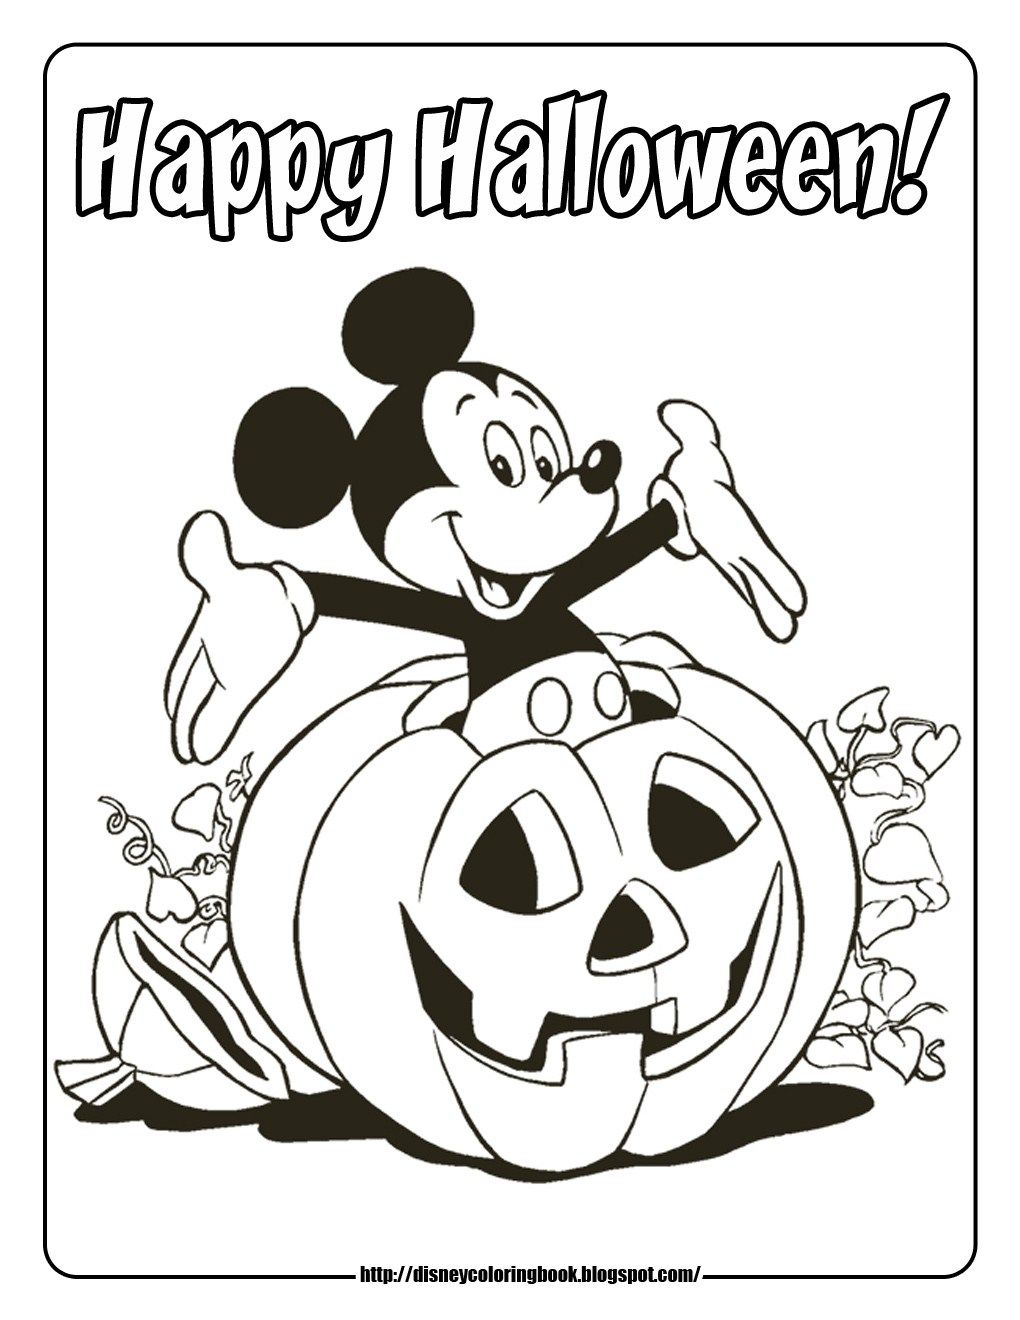 Contact Support Free Halloween Coloring Pages Halloween Coloring Pictures Halloween Coloring Pages